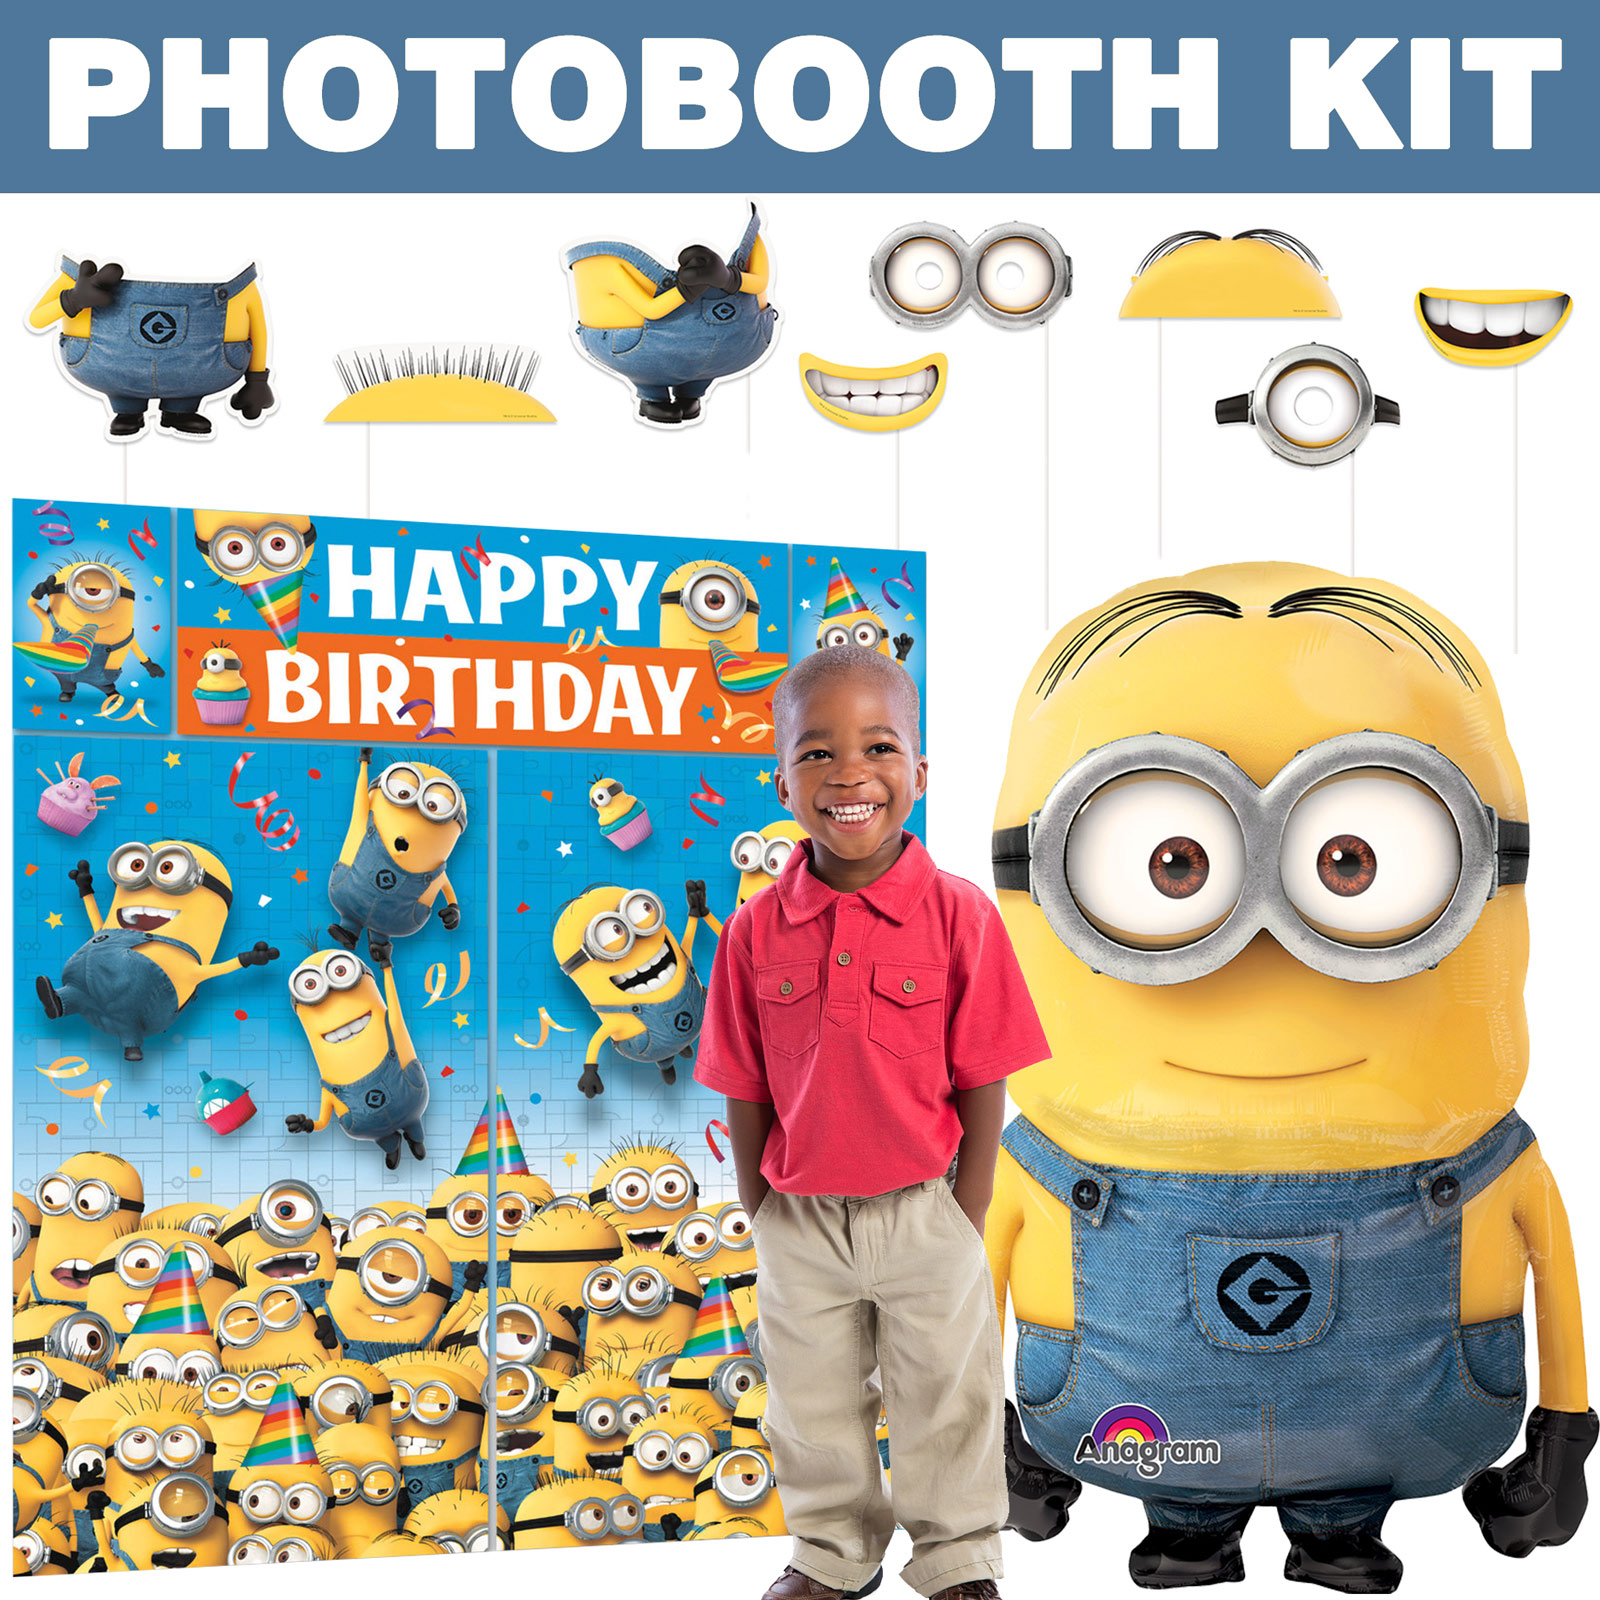 Despicable Me Deluxe Photo Booth Kit - Party Supplies BBKIT1030D